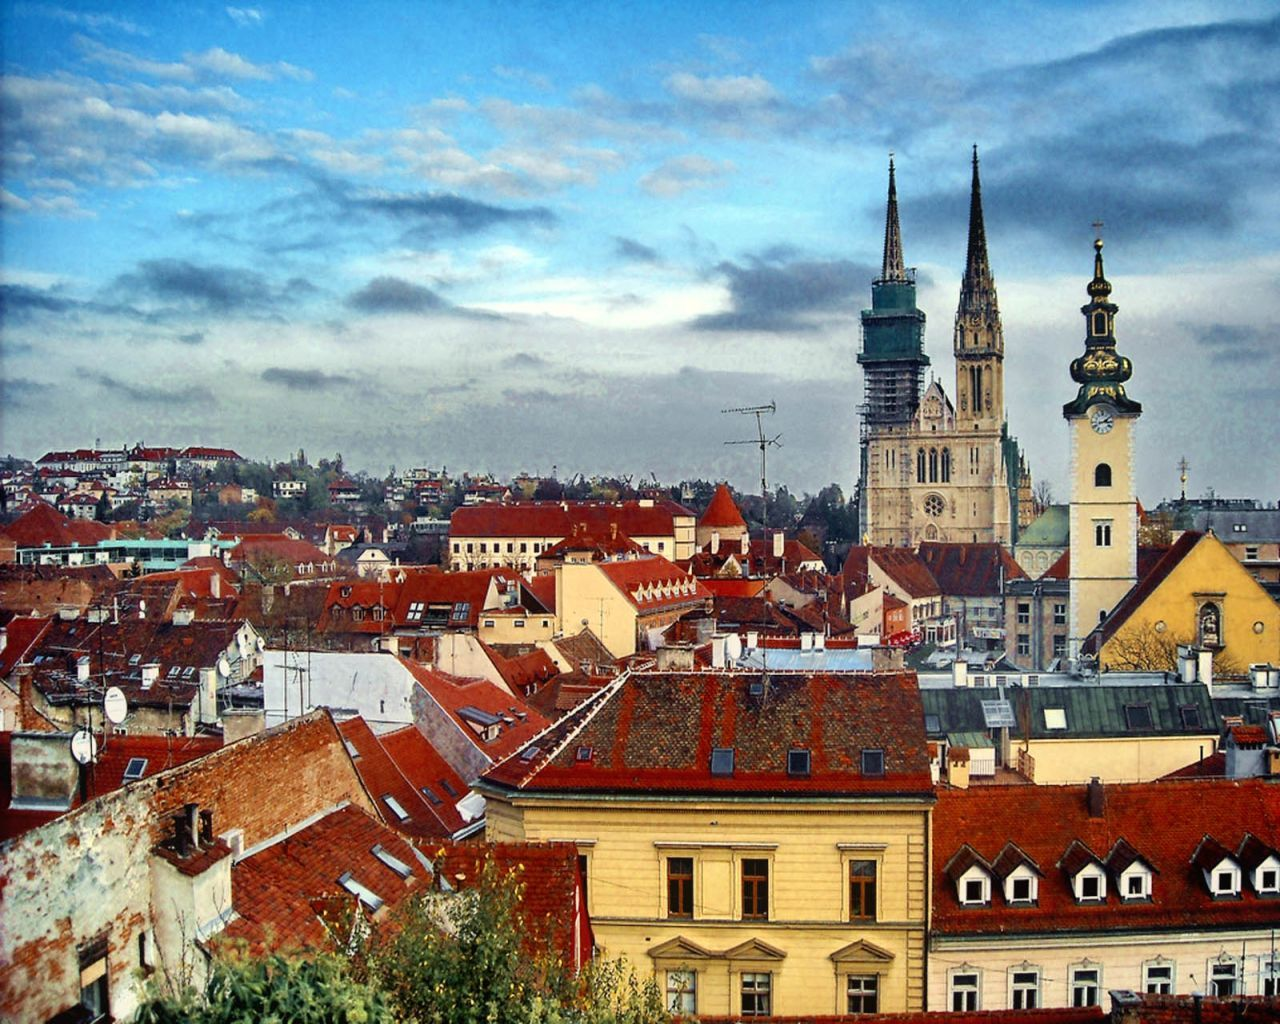 Croatia S Coastal Attractions Aside Zagreb Has Finally Been Discovered As A Popular City Break Destination In Its Own Right Des Zagreb Croatia Zagreb Croatia